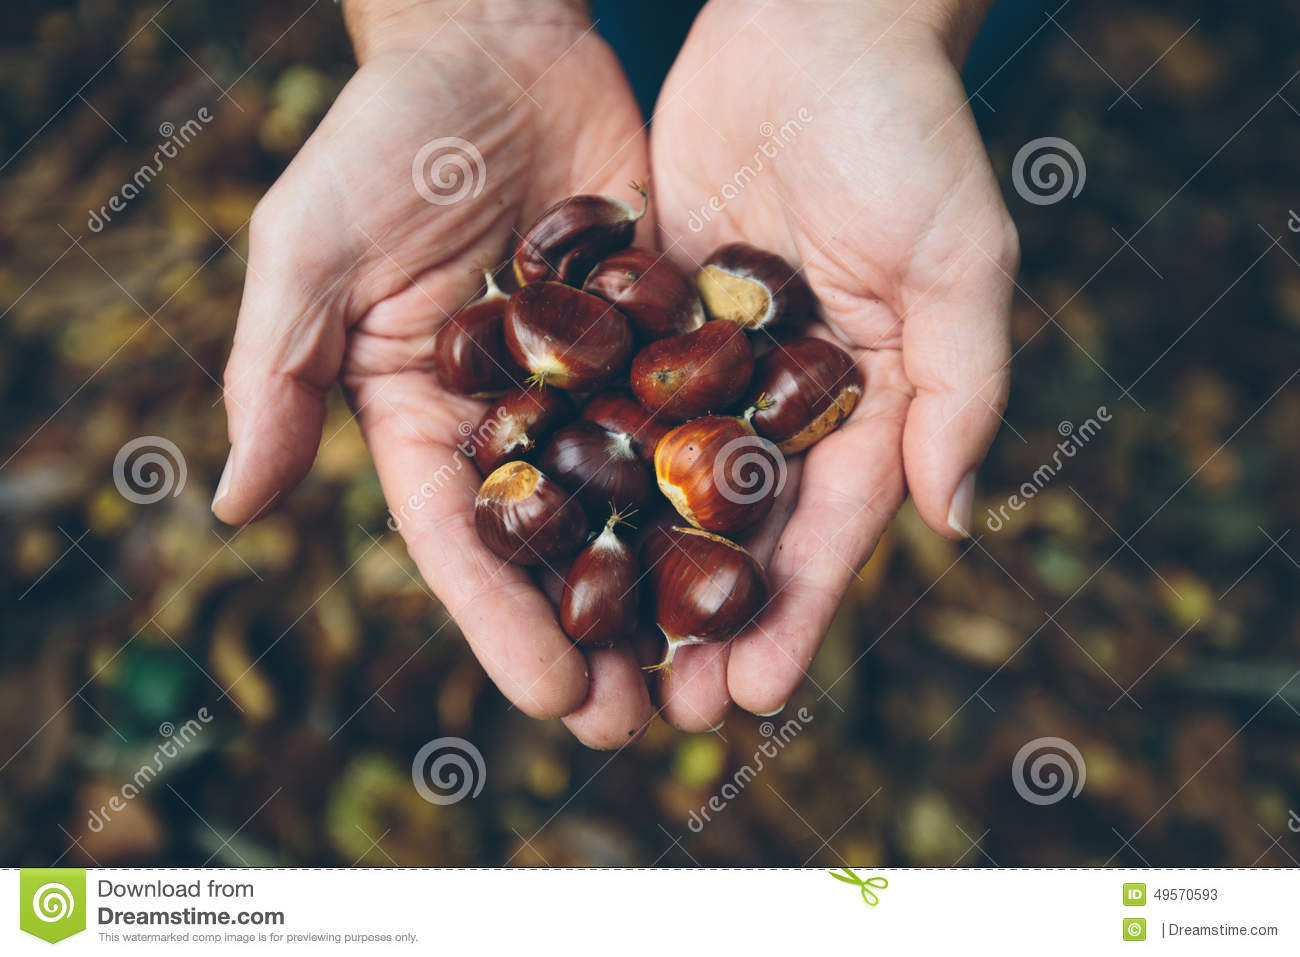 Man Holding Fresh Chestnuts Picked From Forest Floor Stock